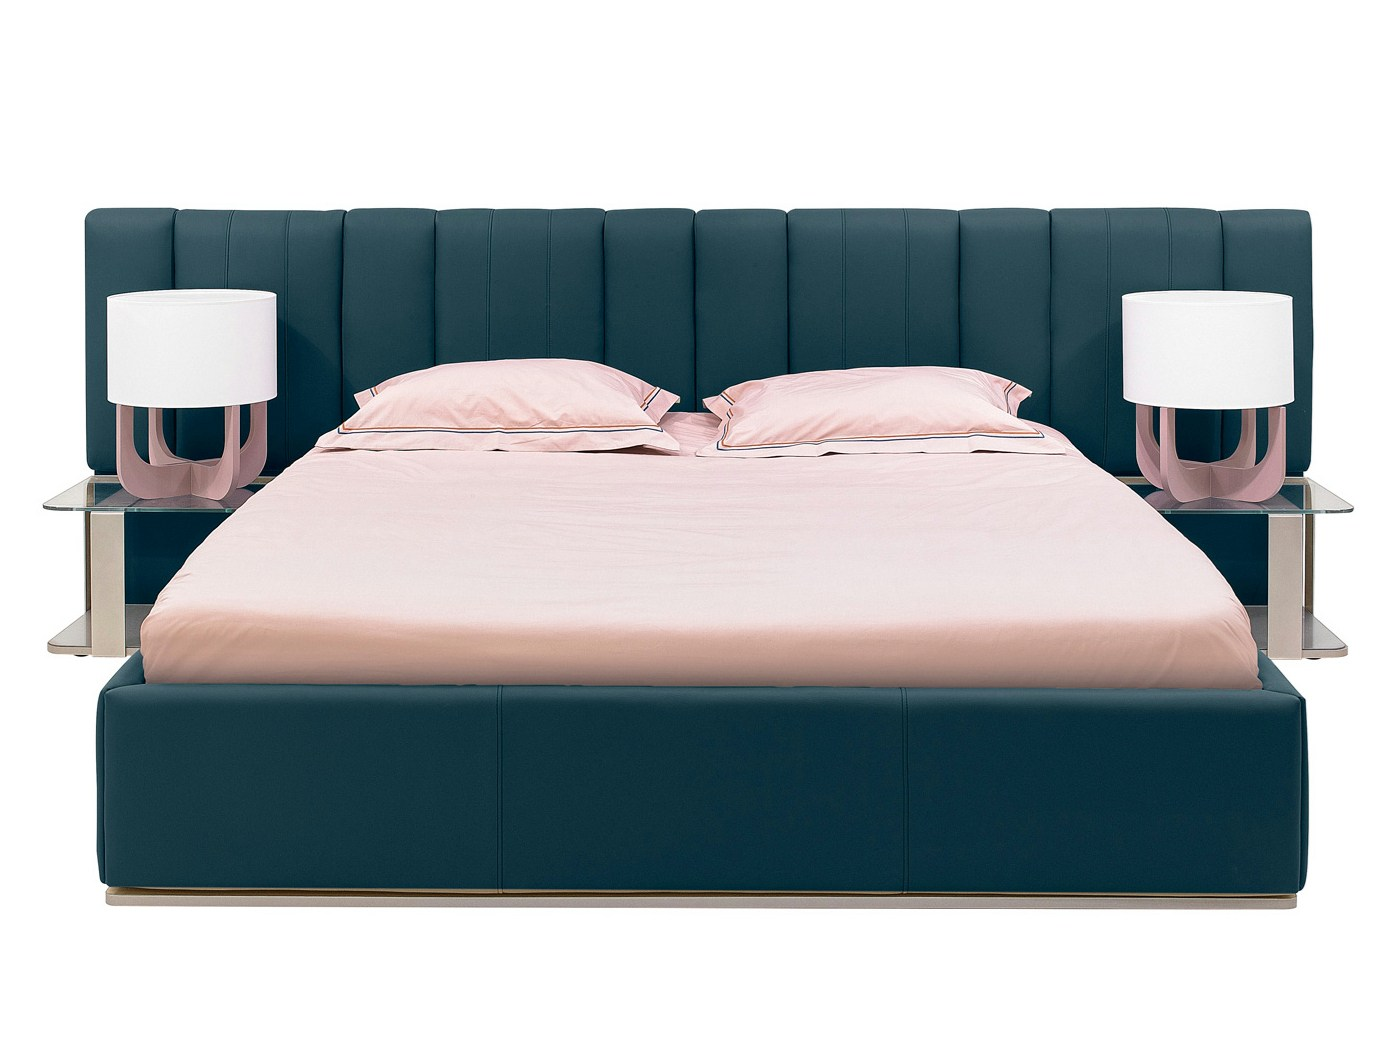 Double Mattress Premium Bed By Gautier France